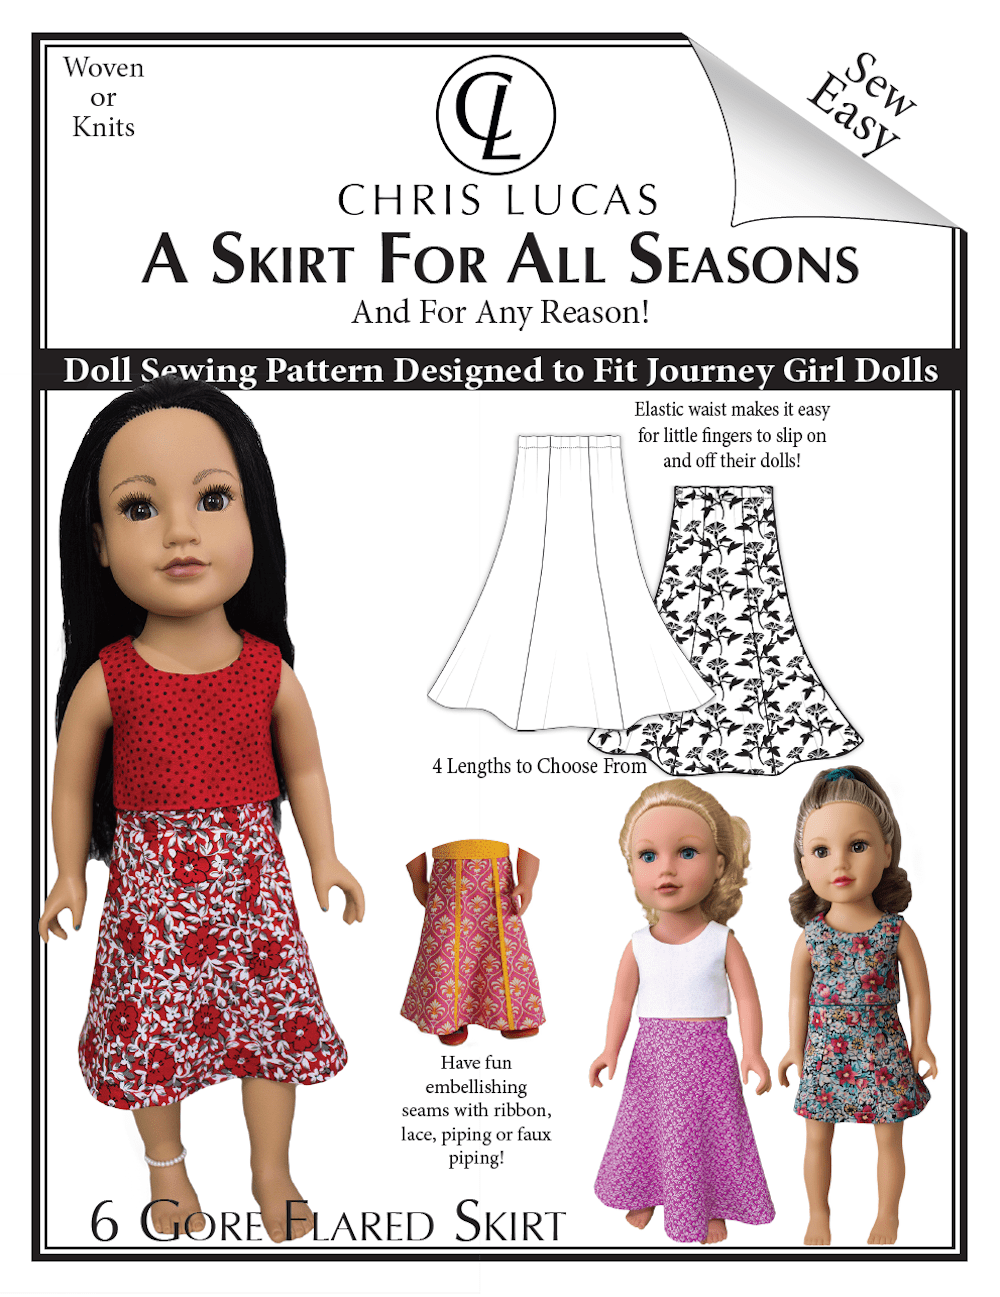 journey-girl-doll-sewing-pattern-a-skirt-for-all-seasons-chris-lucas-designs-cover-page